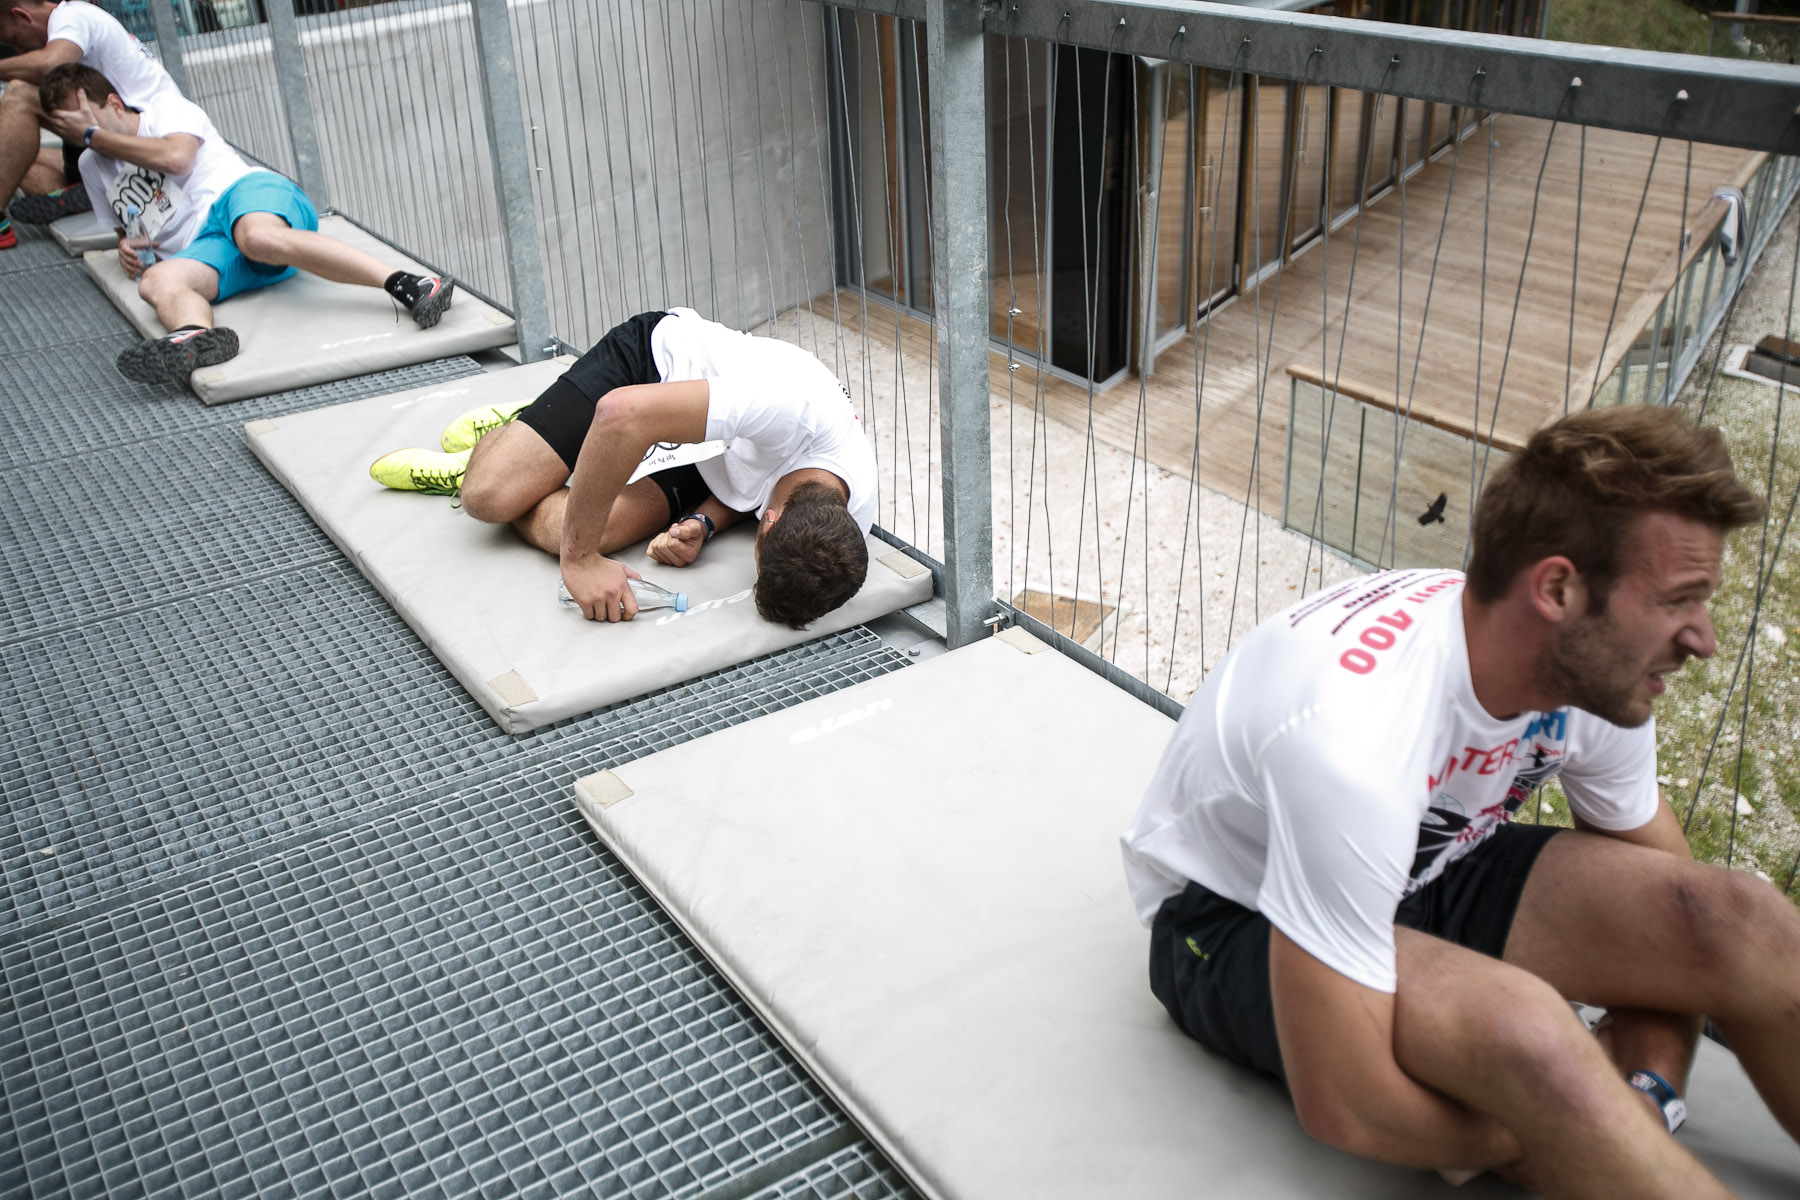 Exhausted competitors rest after running up the ski flying hill during the Red Bull 400 race in Planica, Slovenia, Sep. 19, 2015.